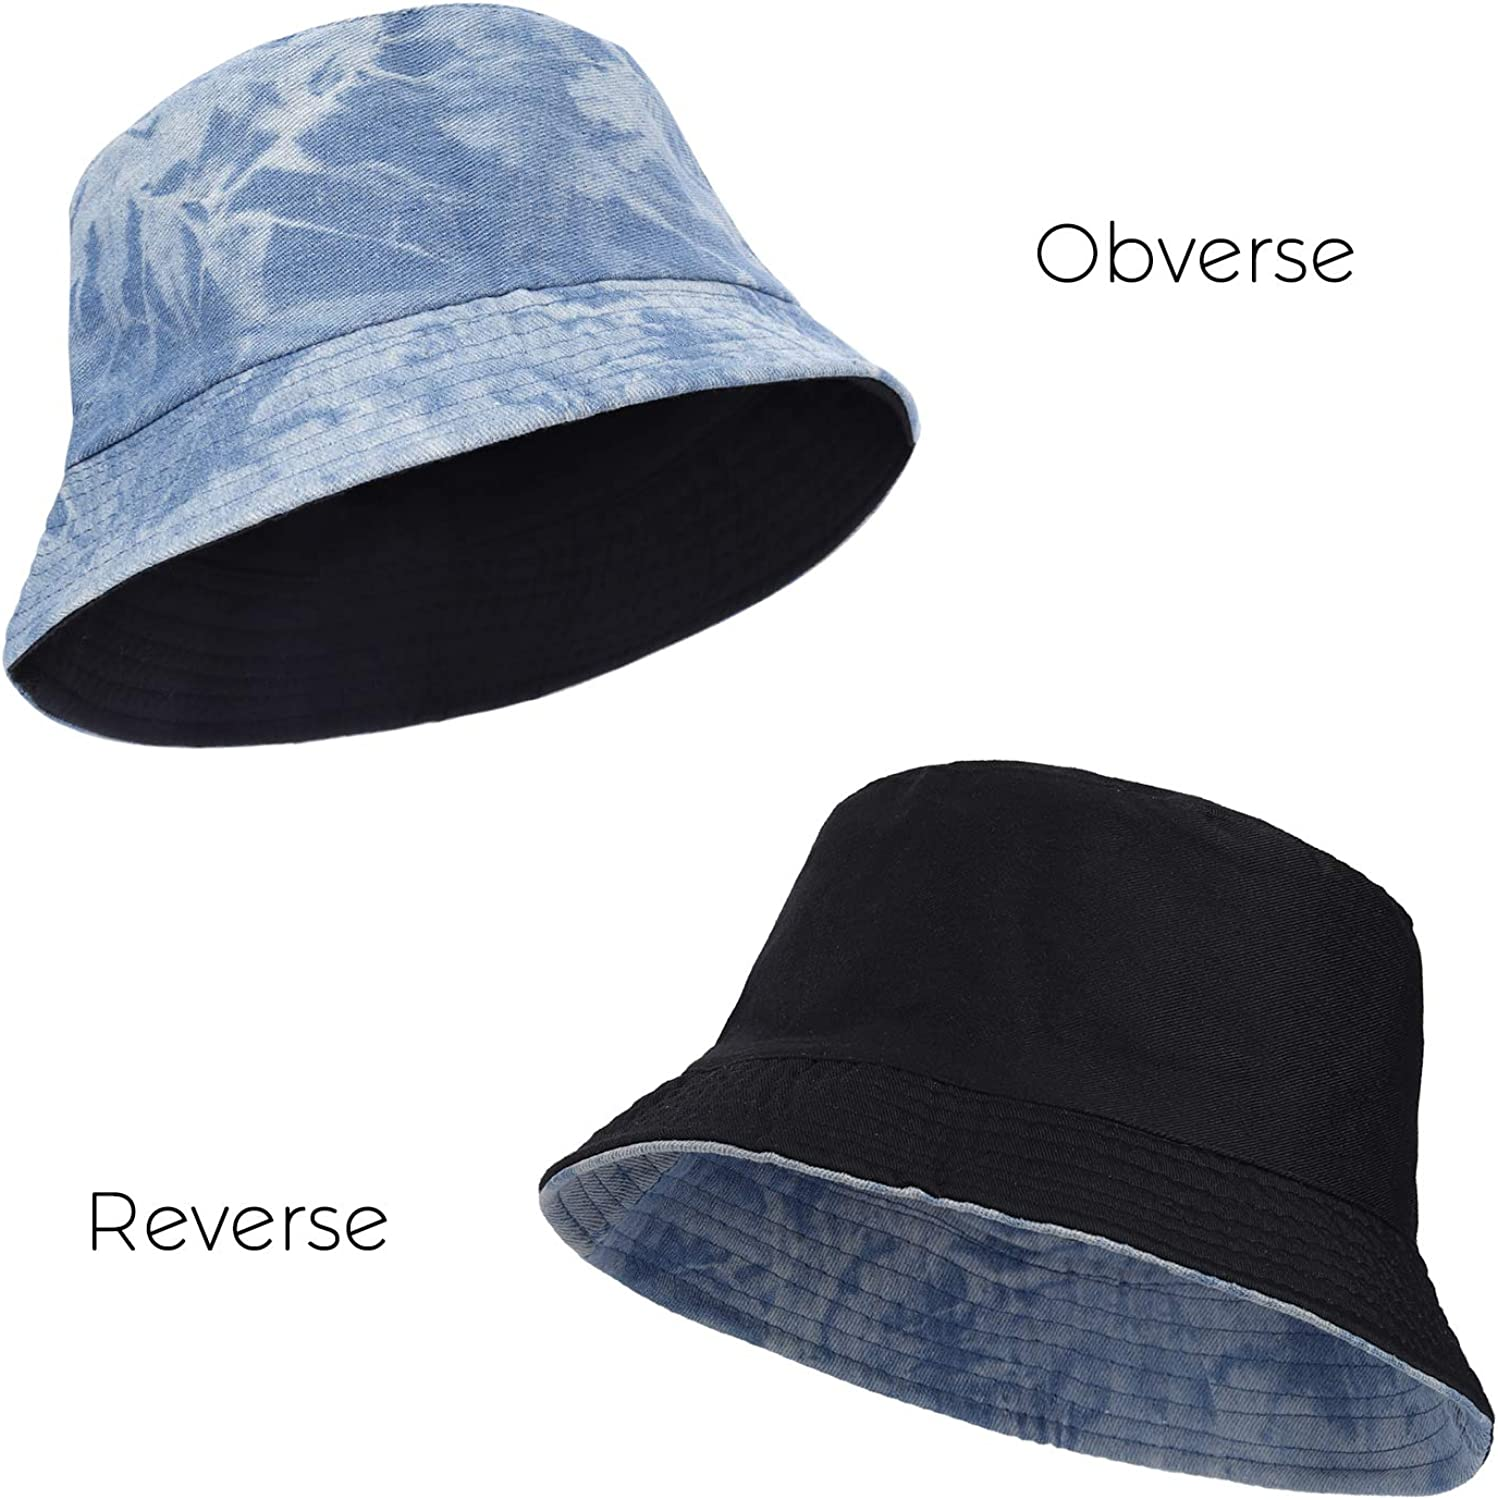 Cotton Denim Beach Sun Cap for Women Men with Reversible Double-Side Wear Packable Summer Fishermans Headwear Accessories for Vacation Travel Fishing Hiking Light Blue RZKJ-SHOP Bucket Hat